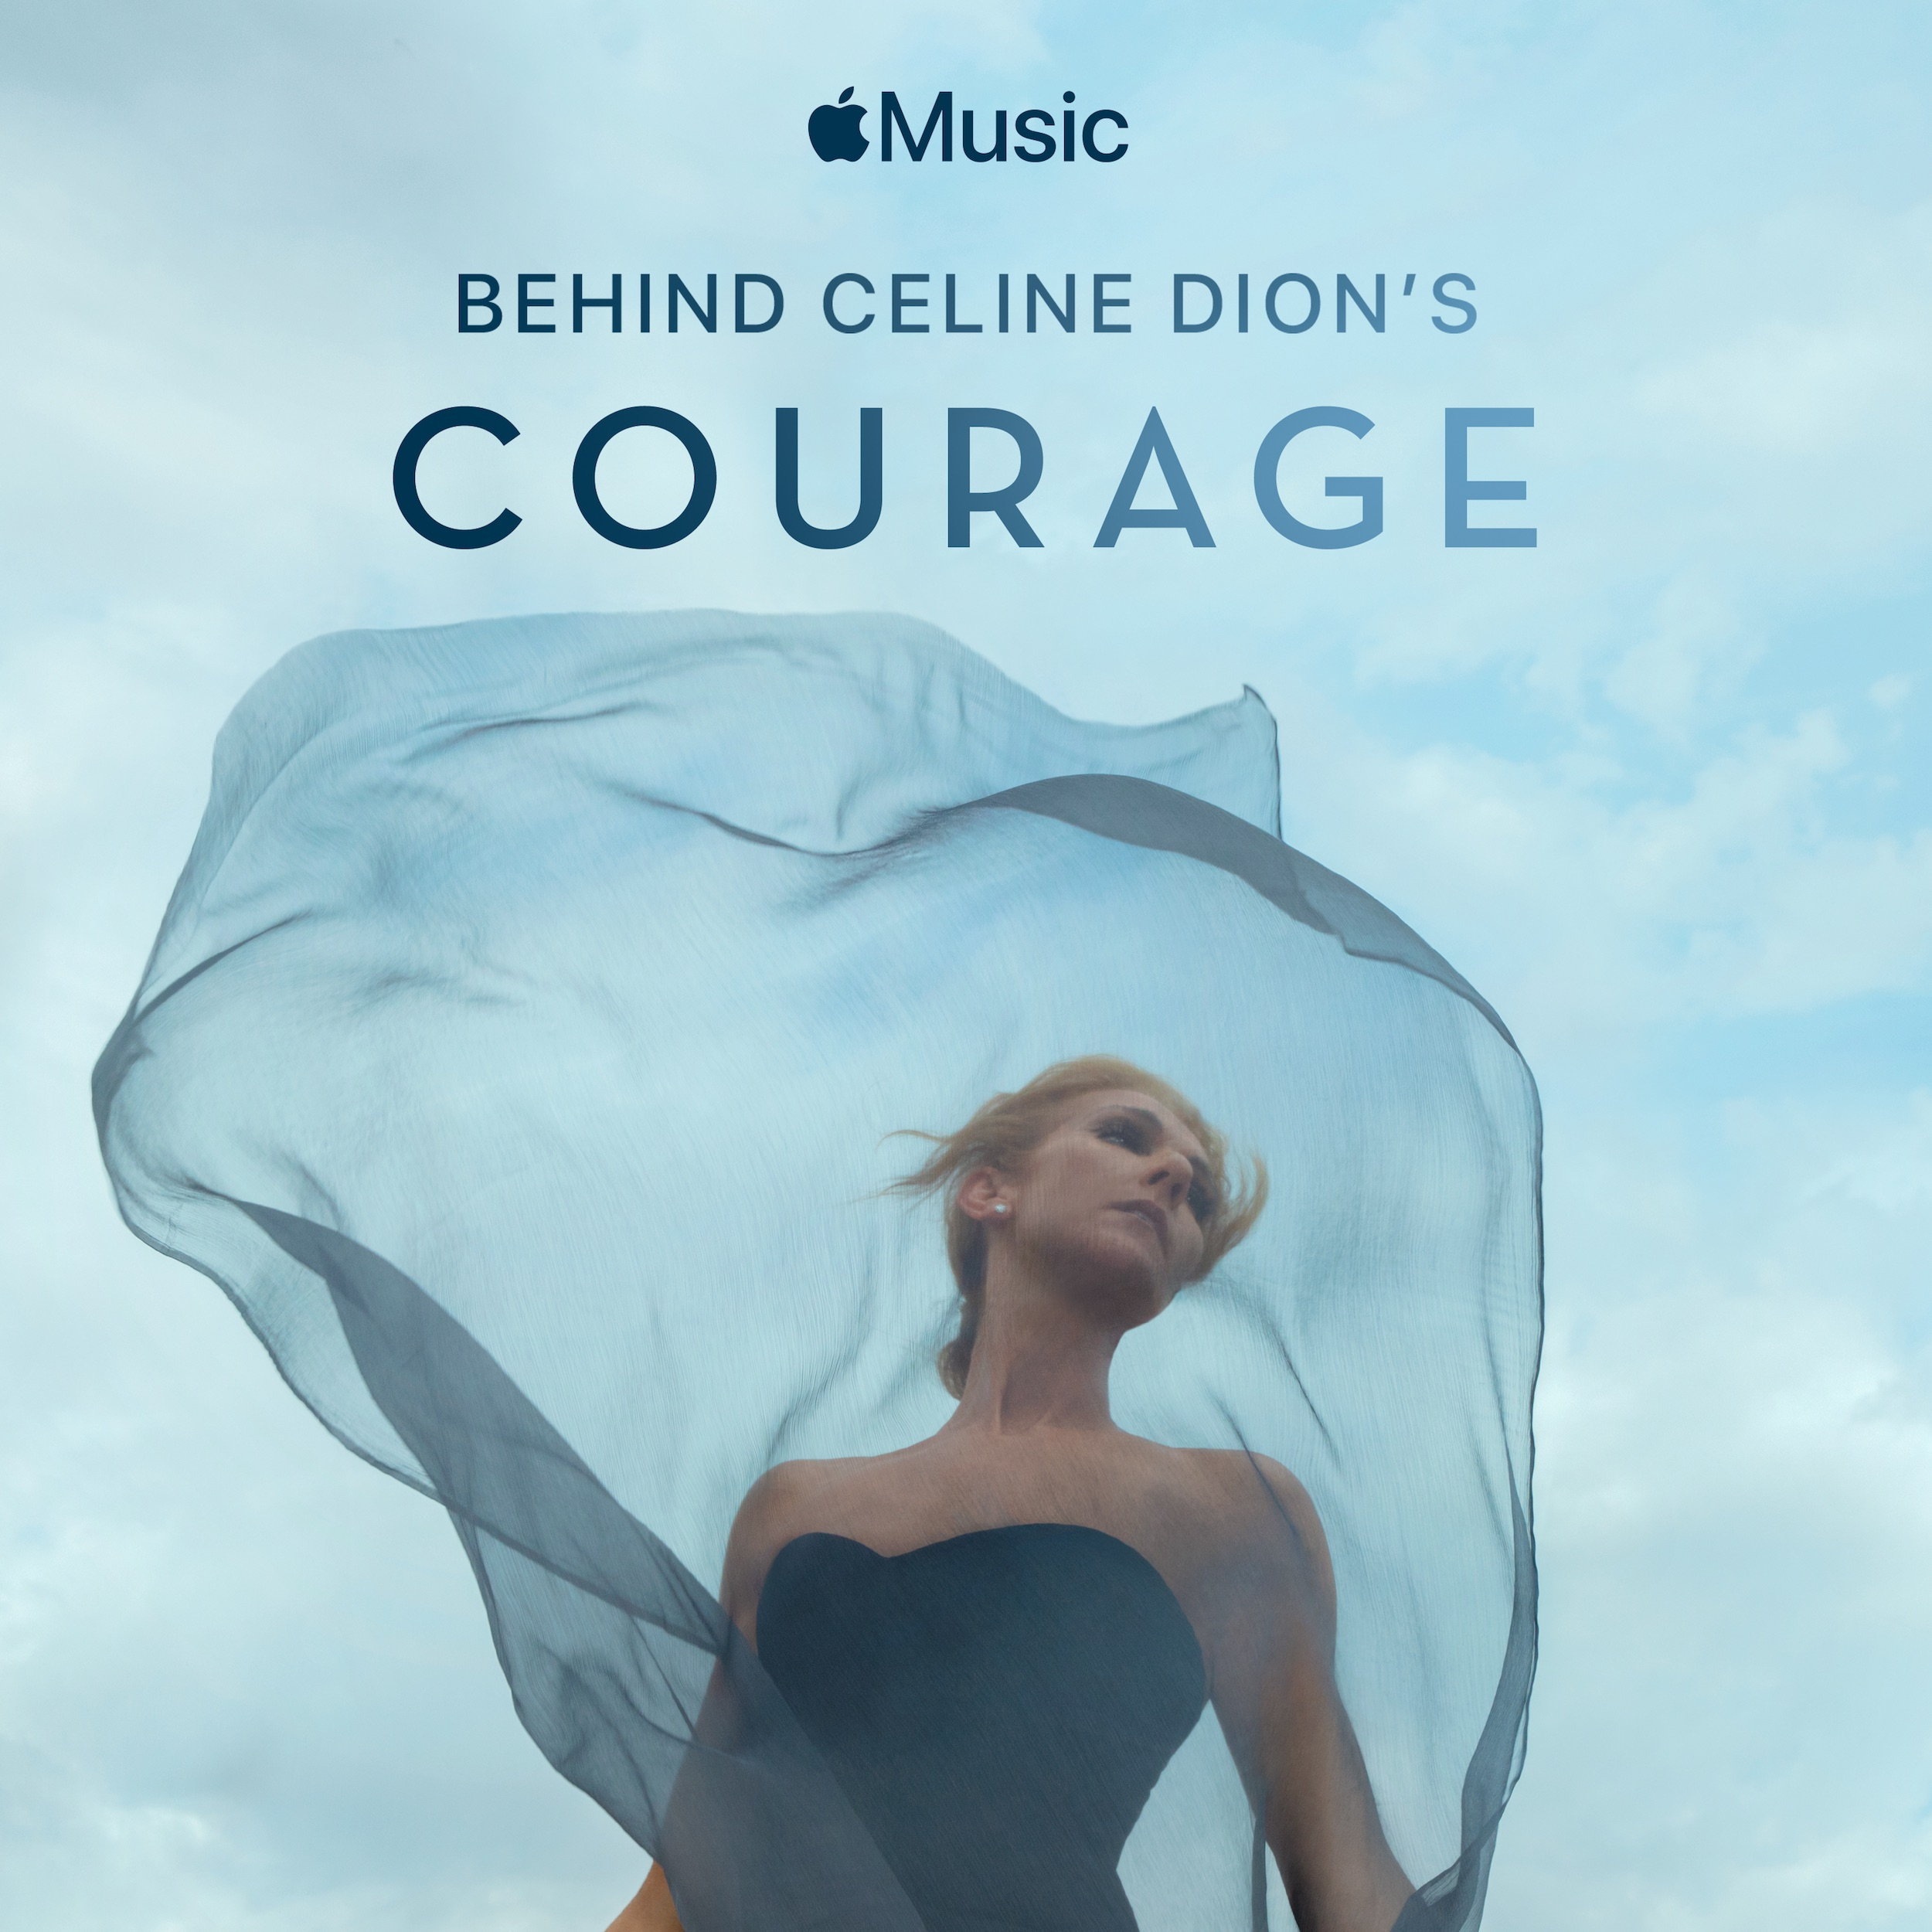 Behind Celine Dion's Courage